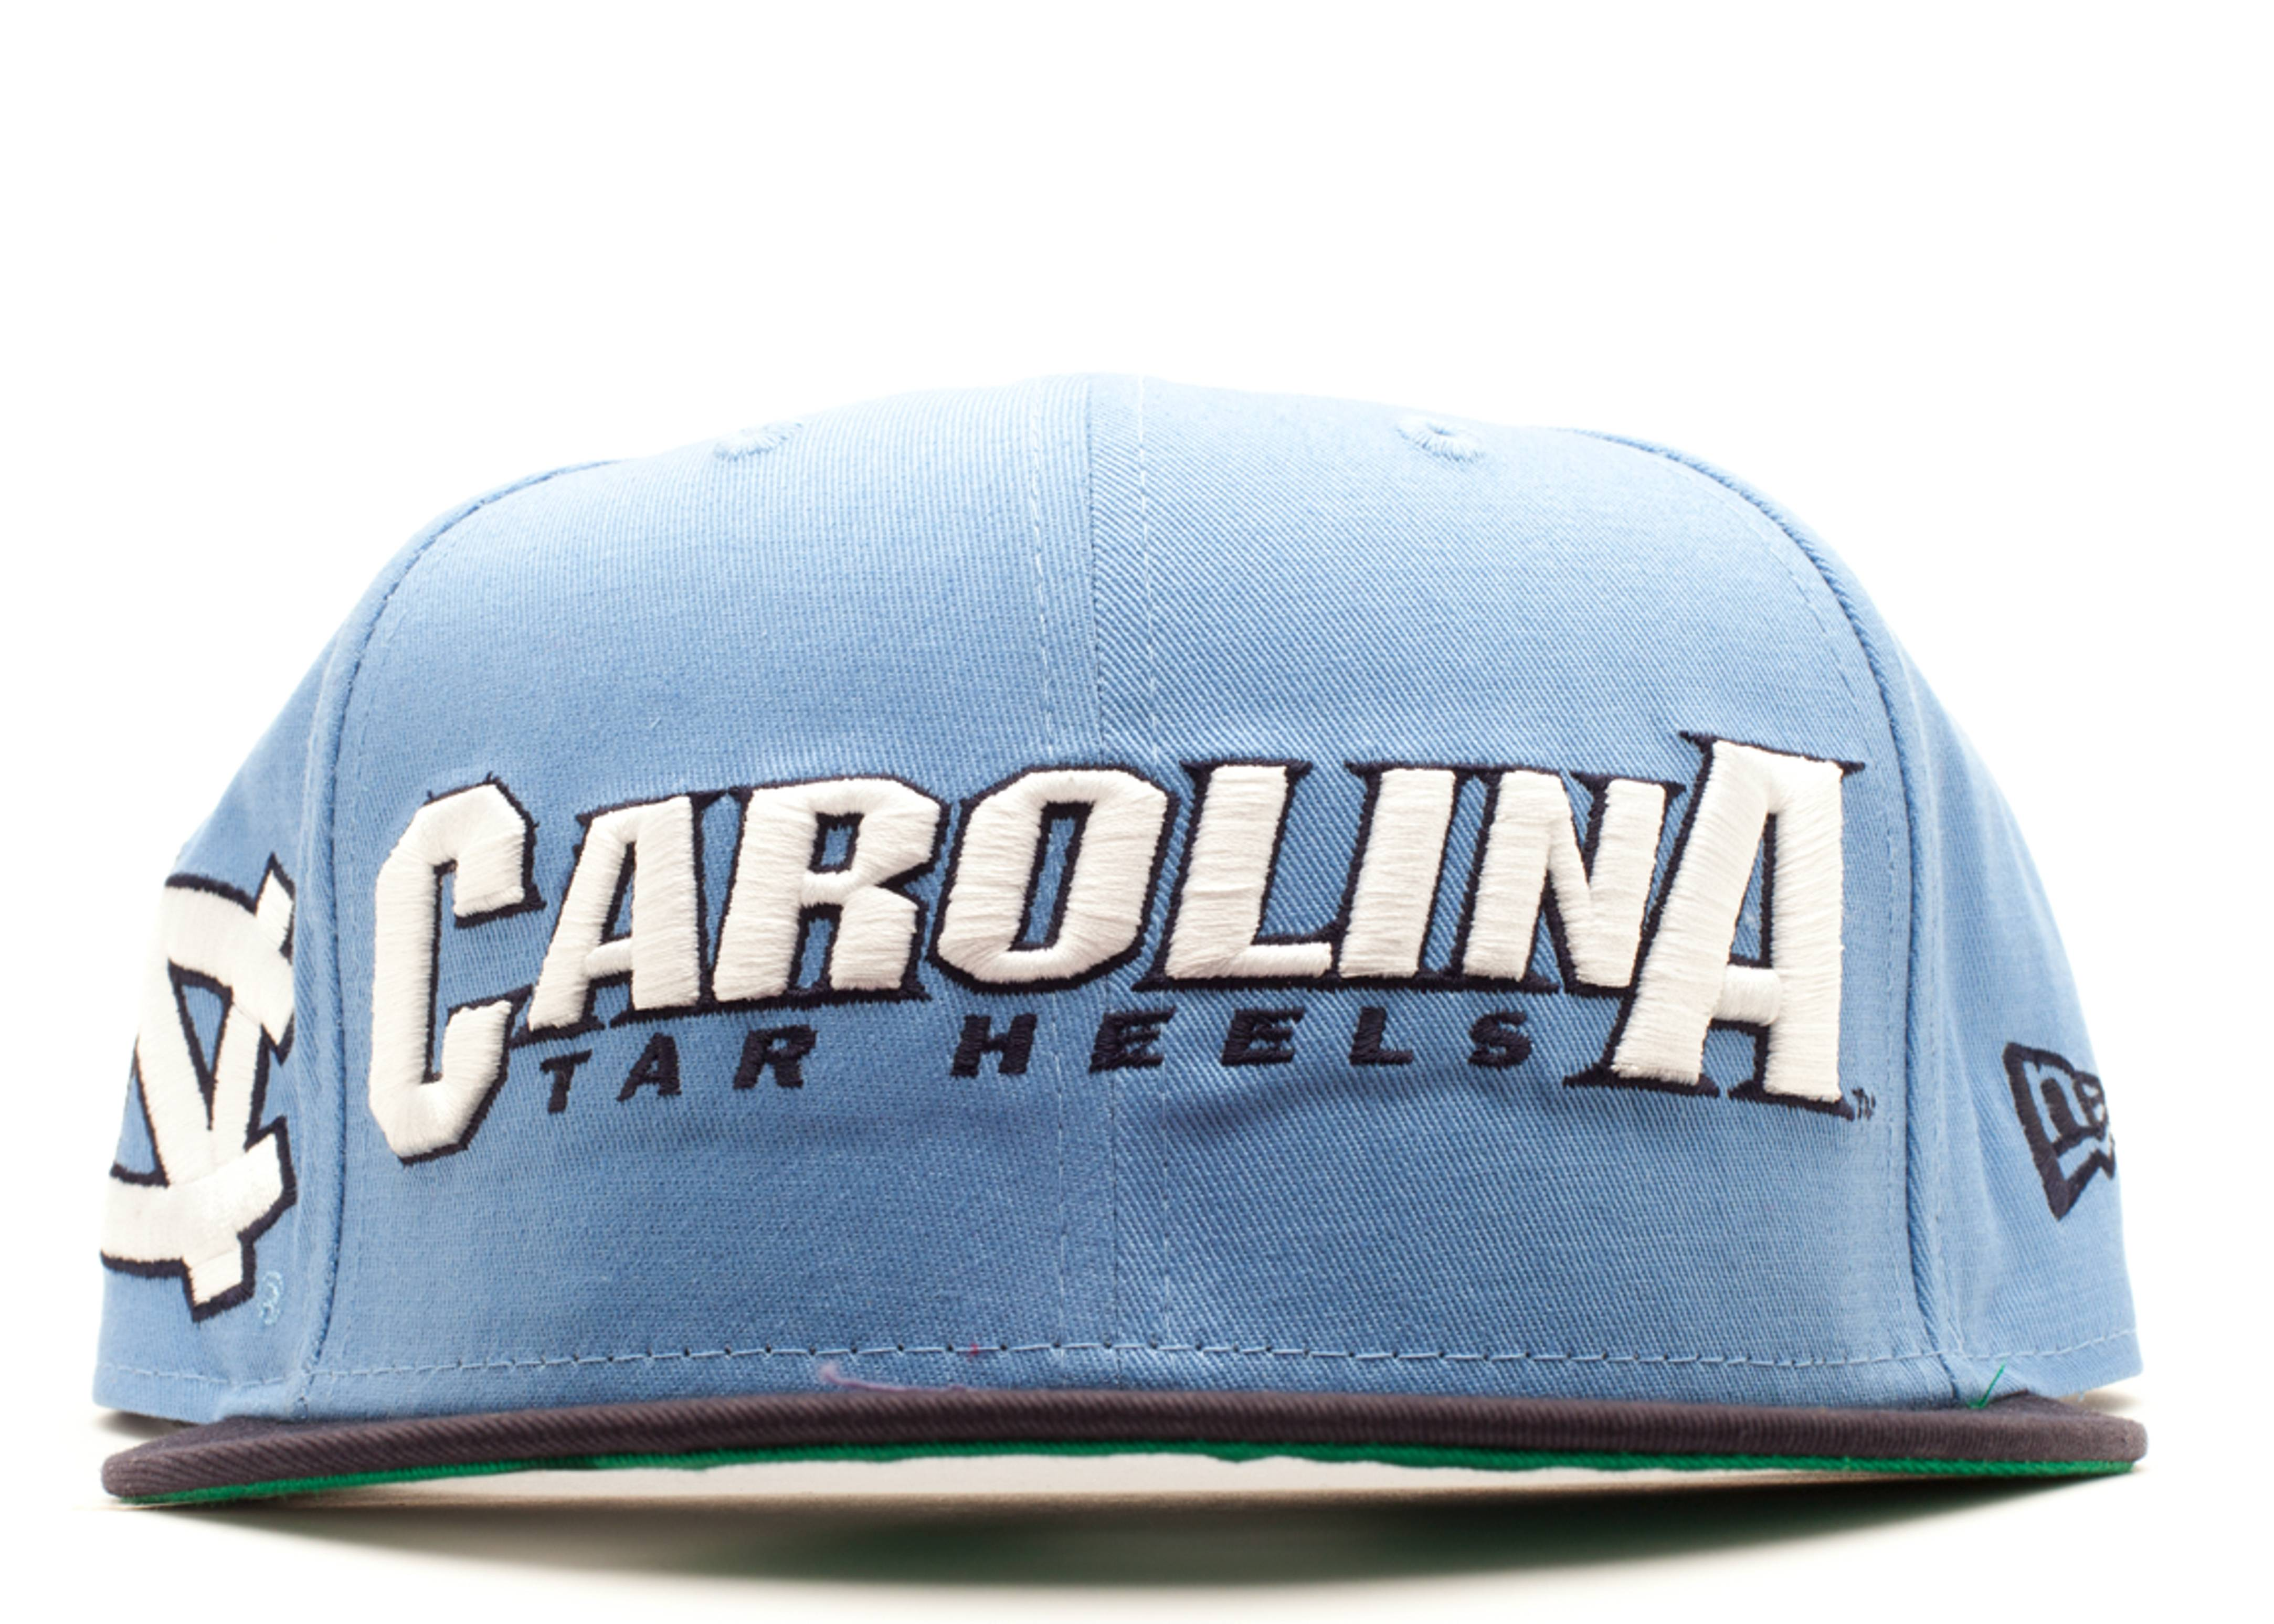 unc tarheels snap-back